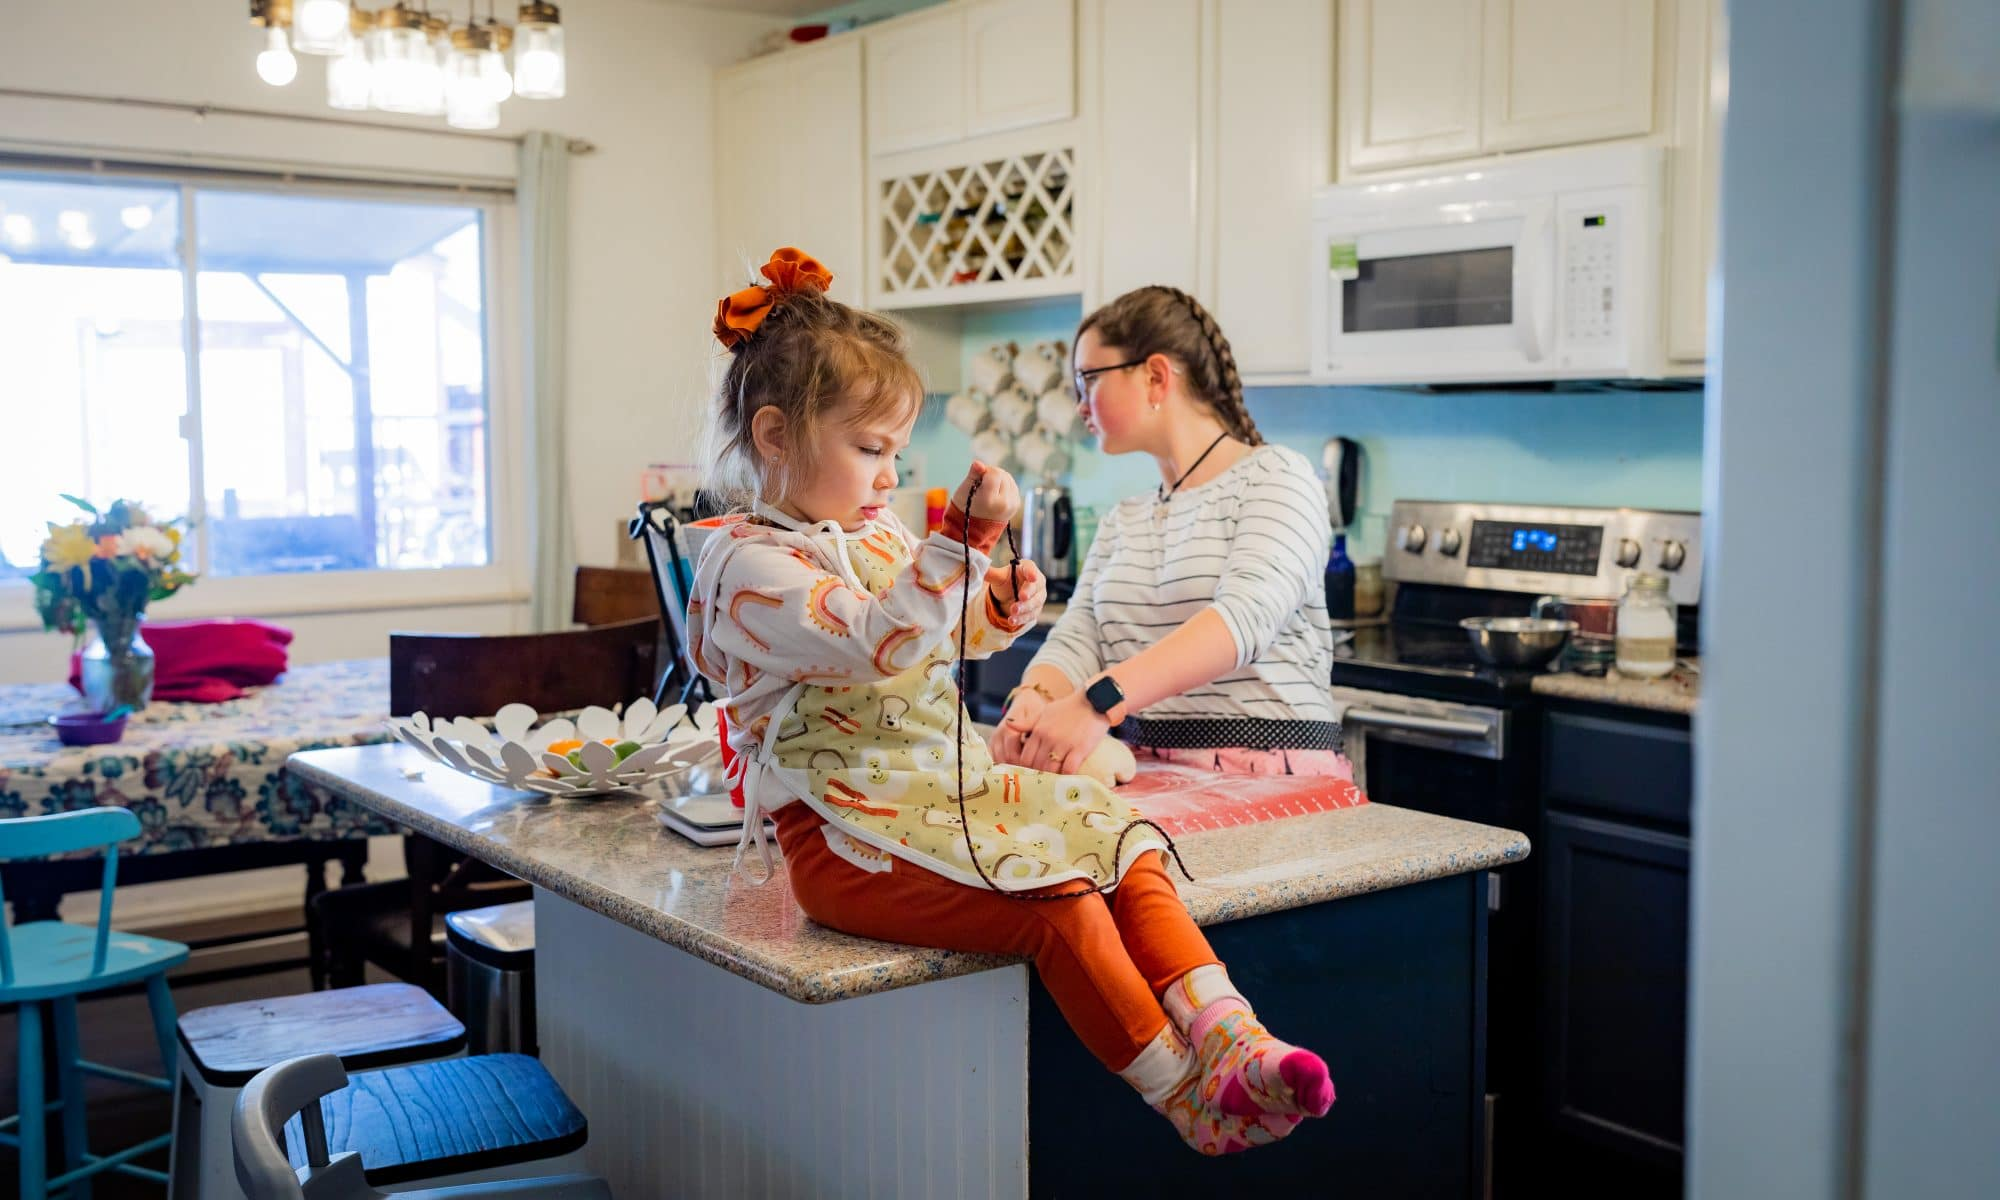 documenting our family baking girls in the kitchen